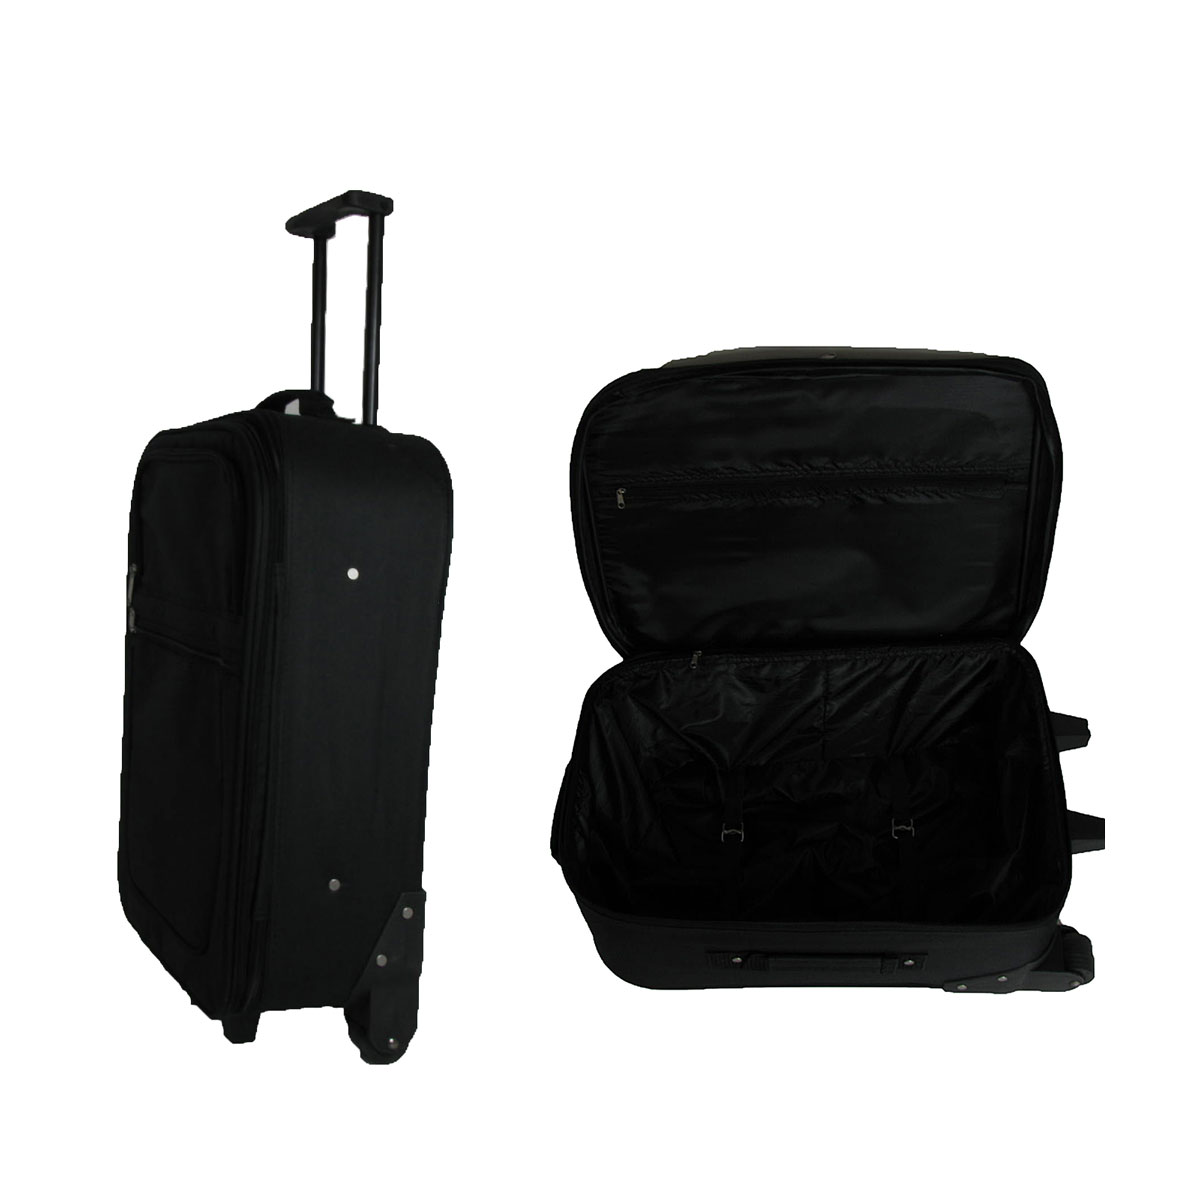 50cm Expandable Trolley Case Travel Bag Cabin Luggage Ebay